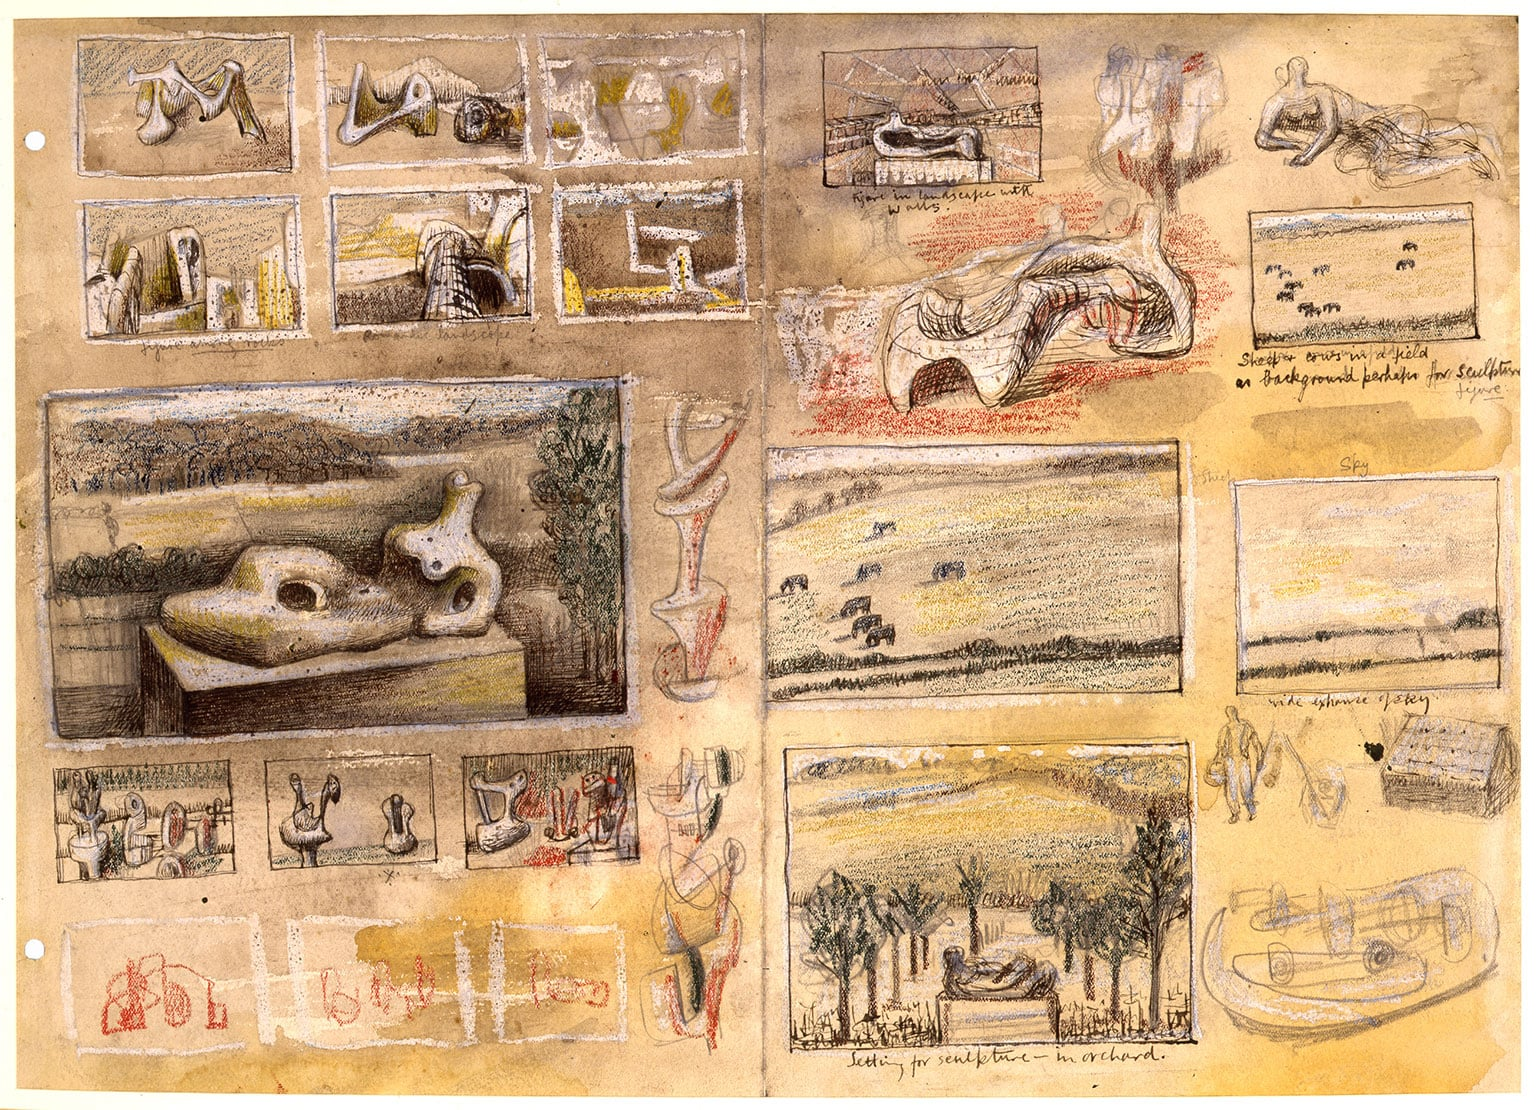 Henry Moore, Ideas for Sculpture in Landscape, c.1938